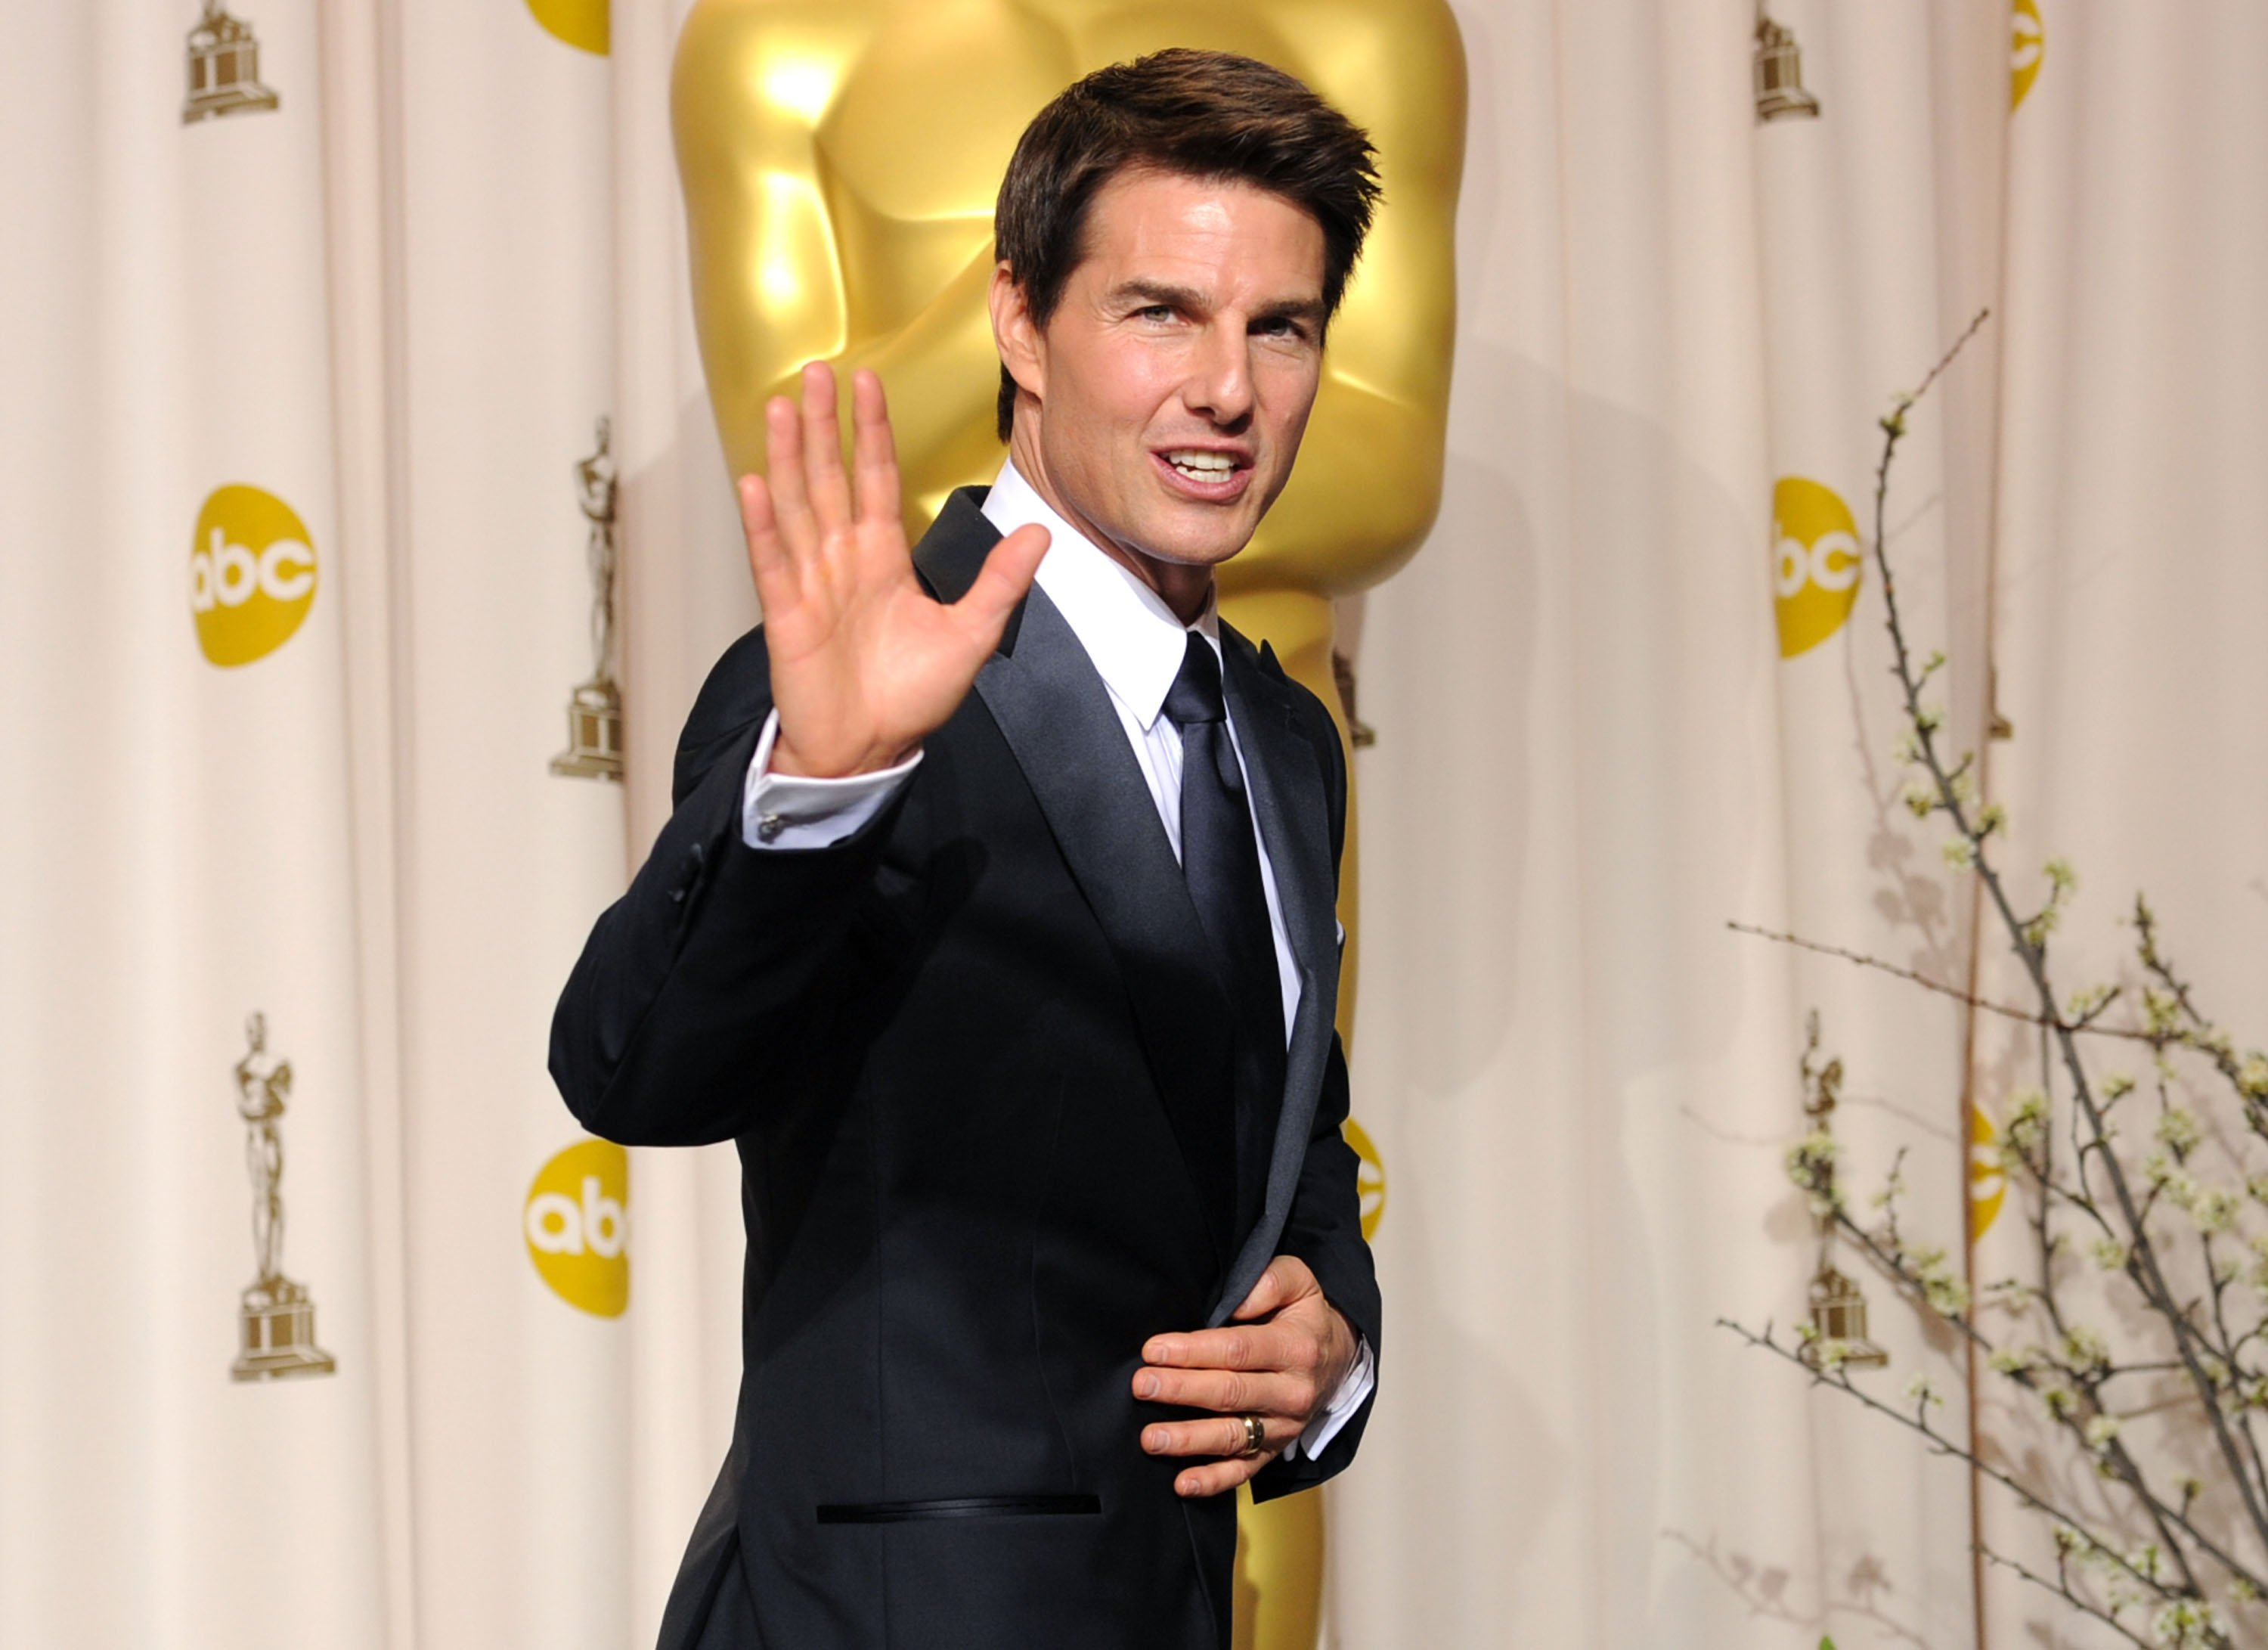 Actor Tom Cruise poses in the press room at the 84th Annual Academy Awards held at the Hollywood & Highland Center on February 26, 2012 | Photo: Getty Images